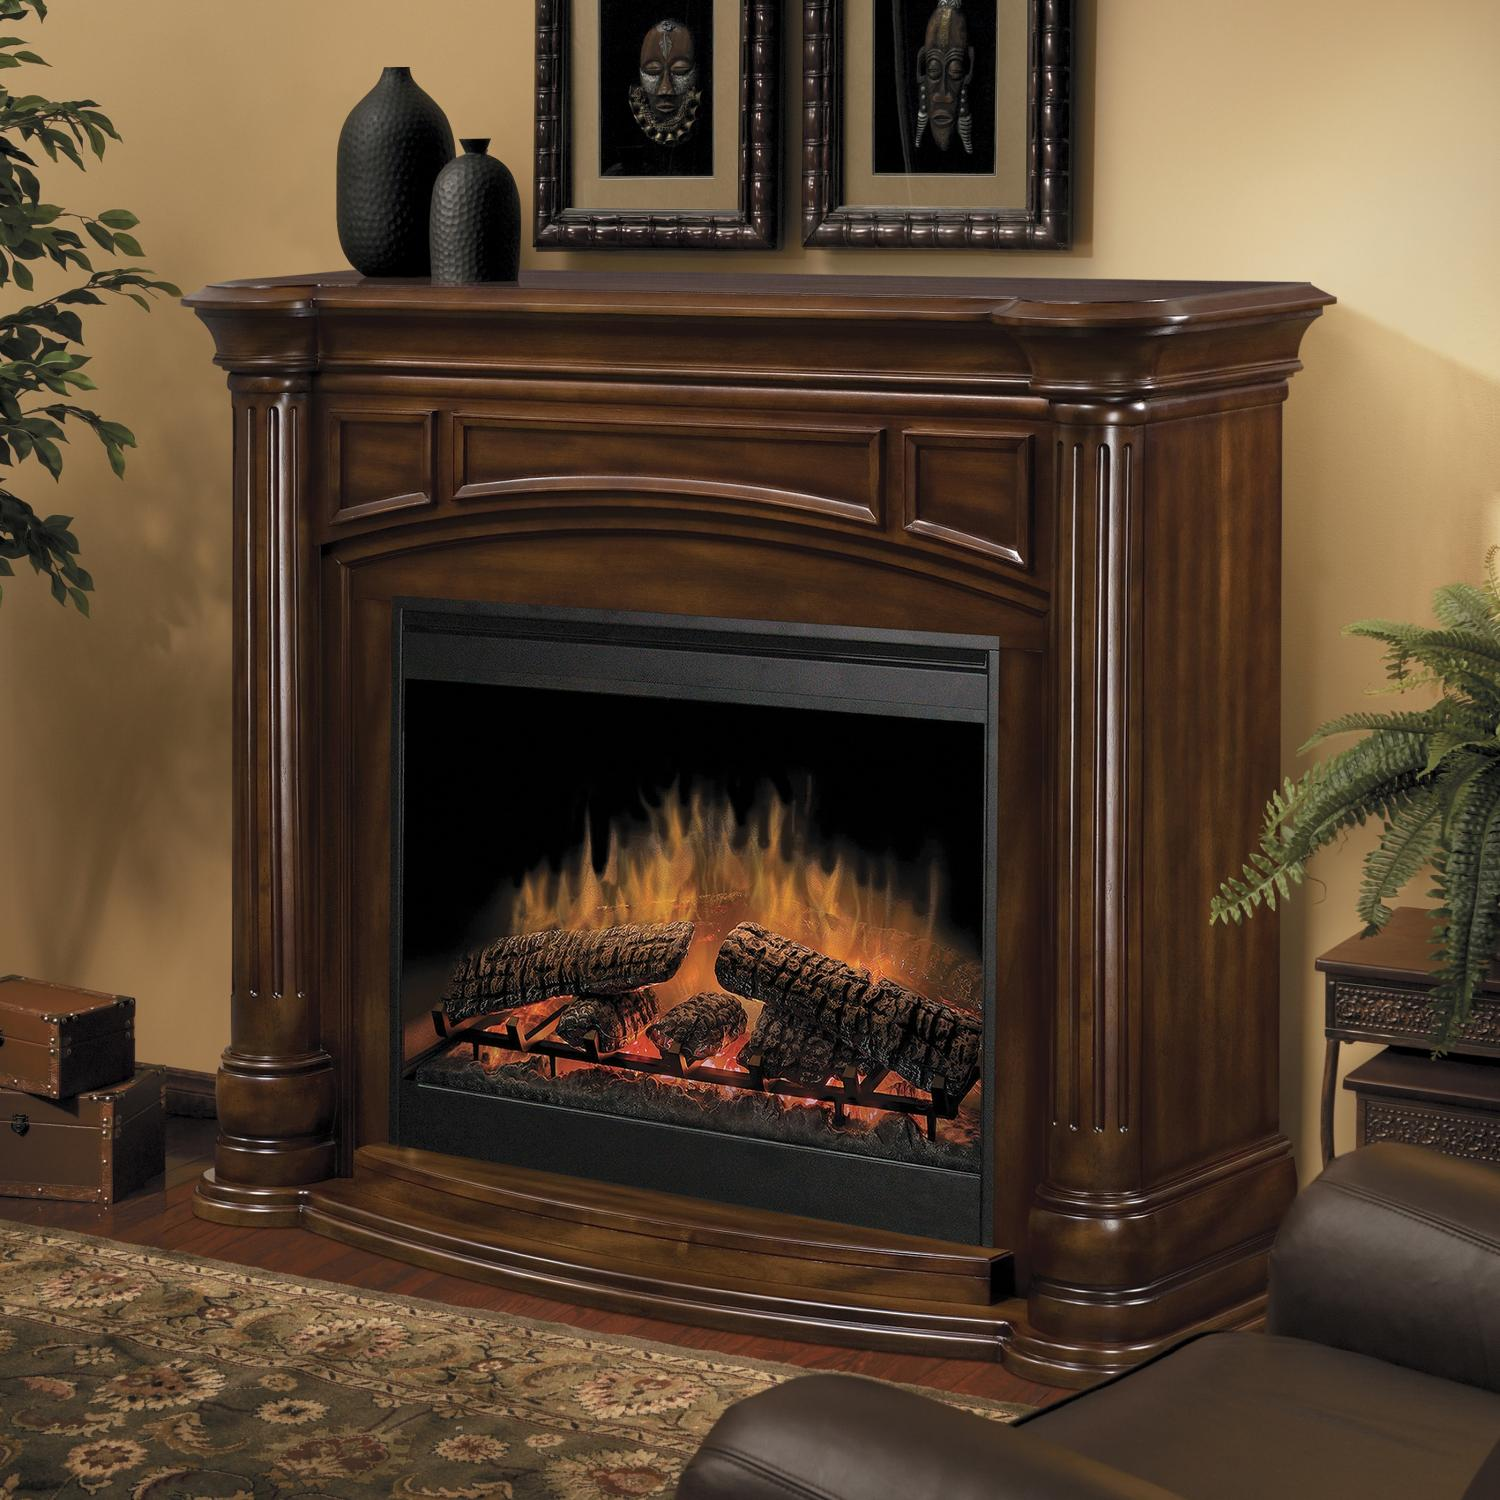 black dimplex electric fireplaces with brown wood mantel kit before the cream wall with picture matched with wooden floor with floral rug for home heatwarming ideas